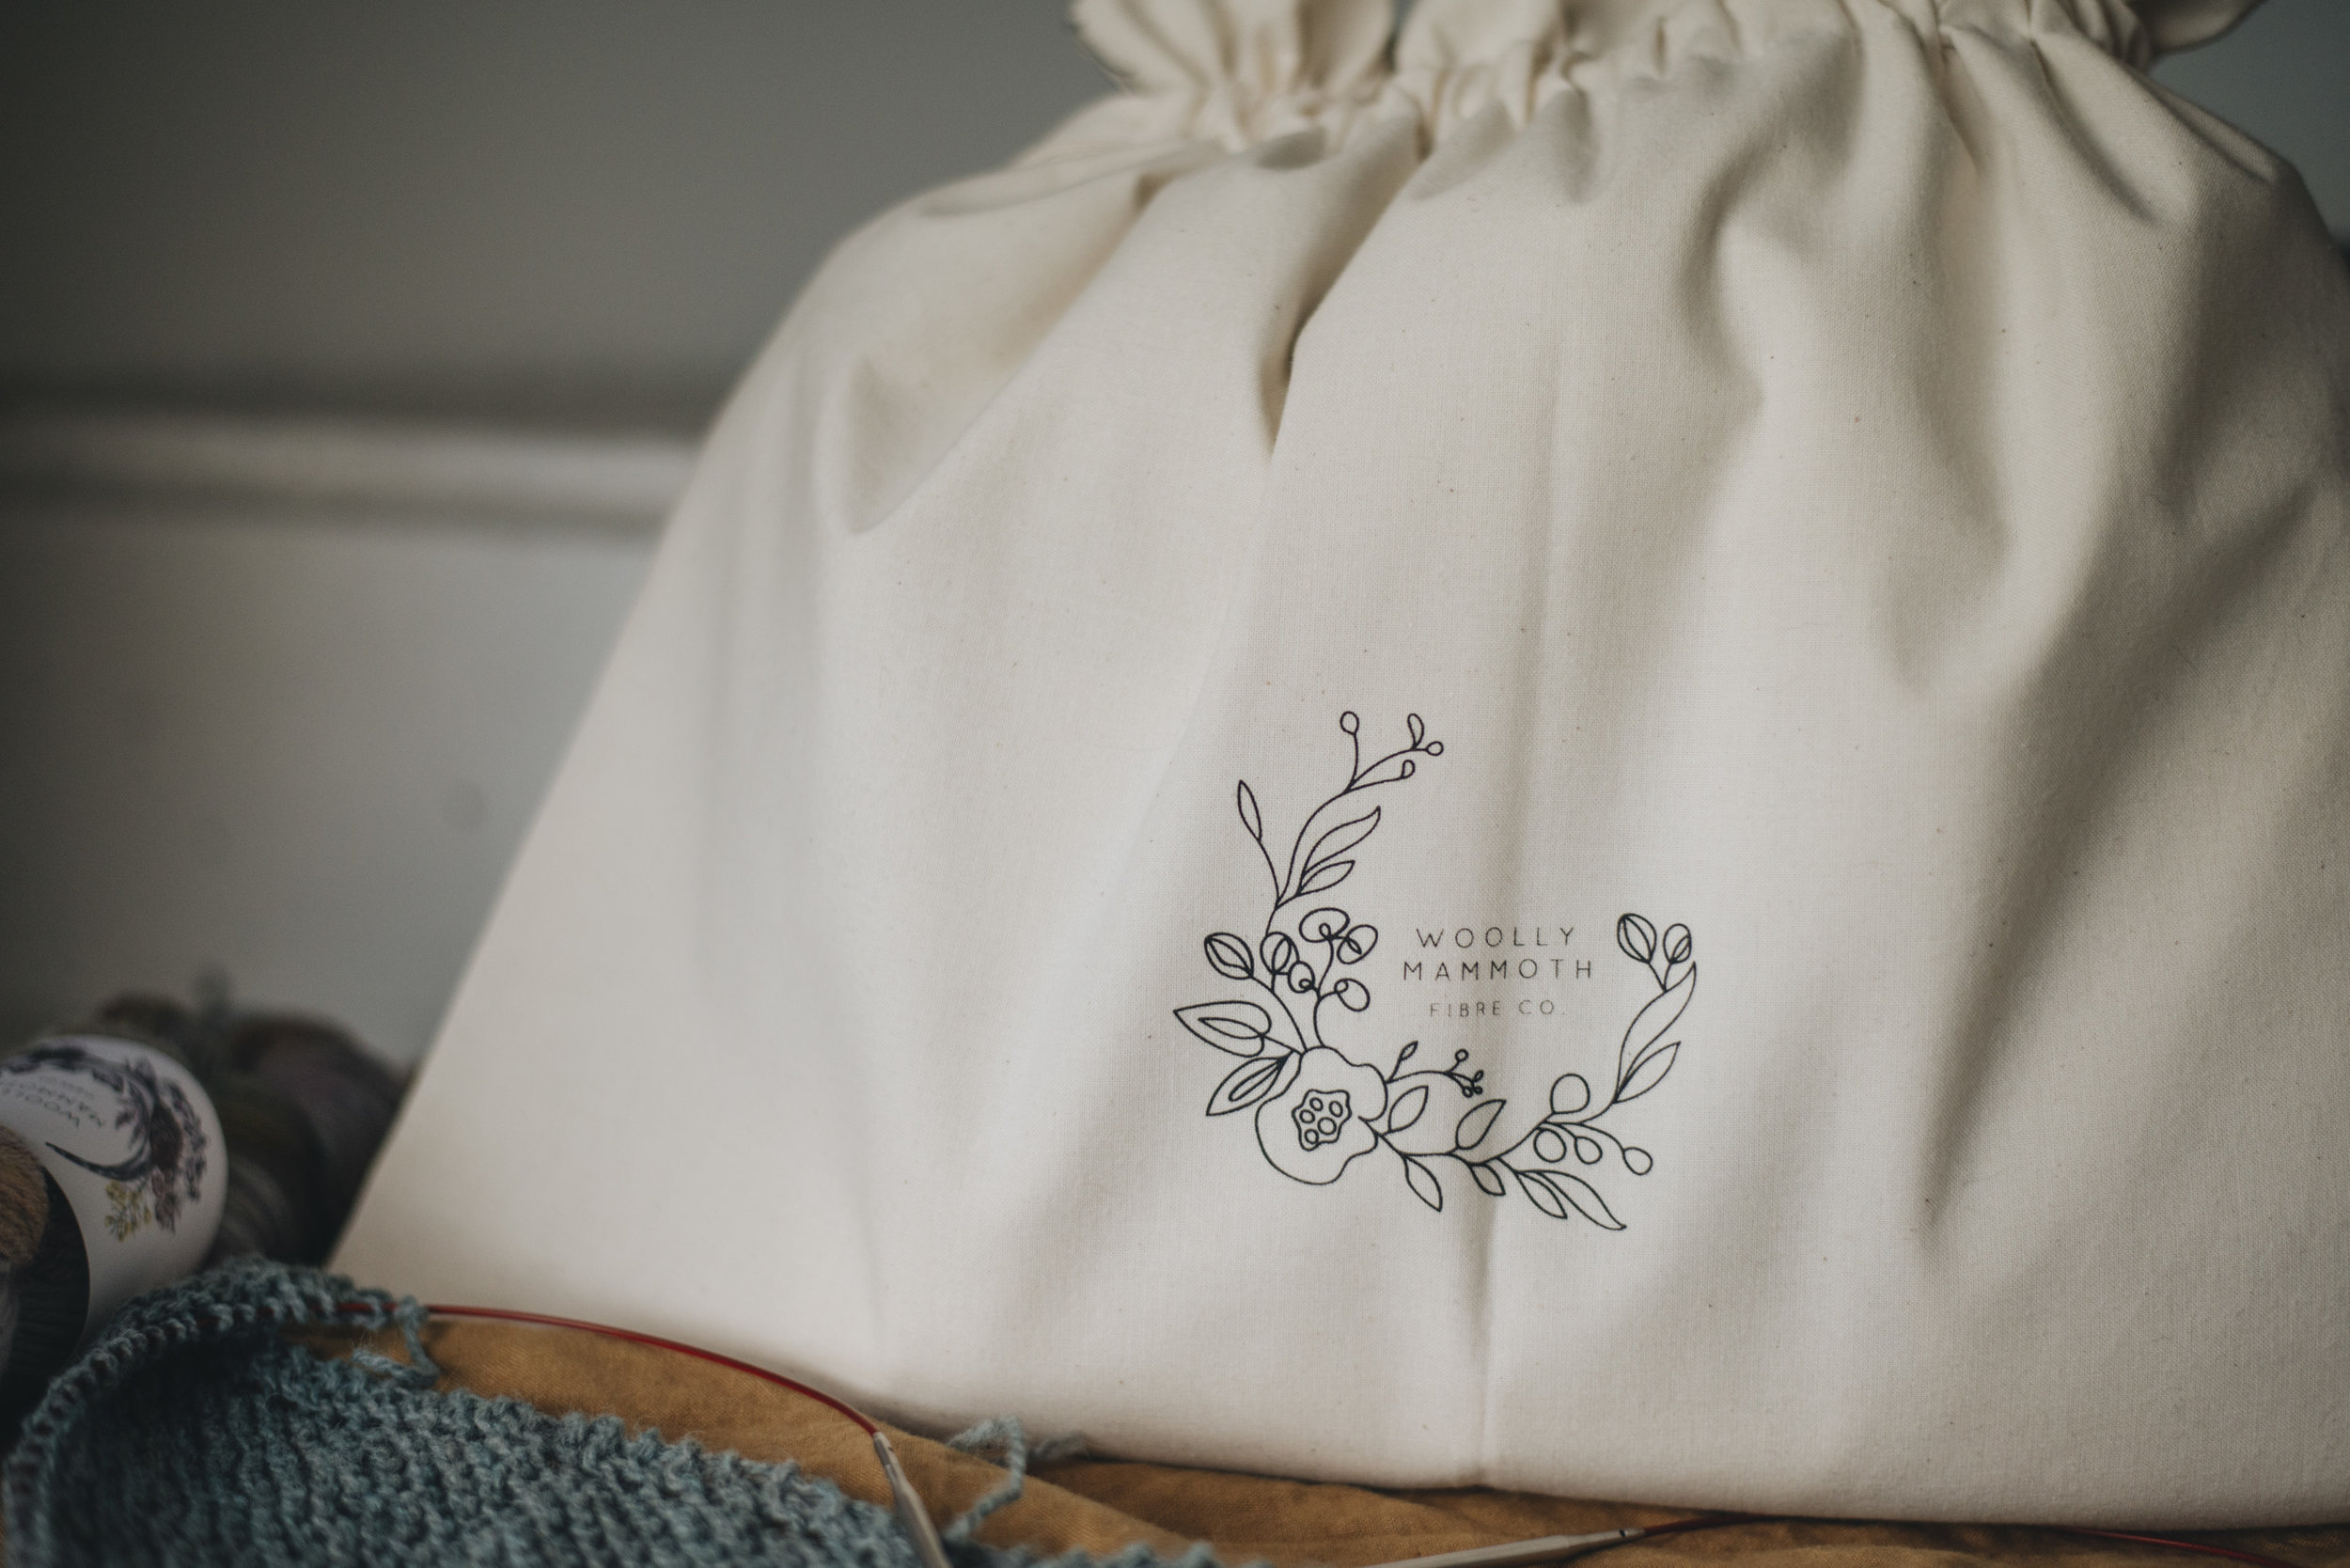 Alex Collins Sweater Knitting Project Bag for Woolly Mammoth Fibre Co.